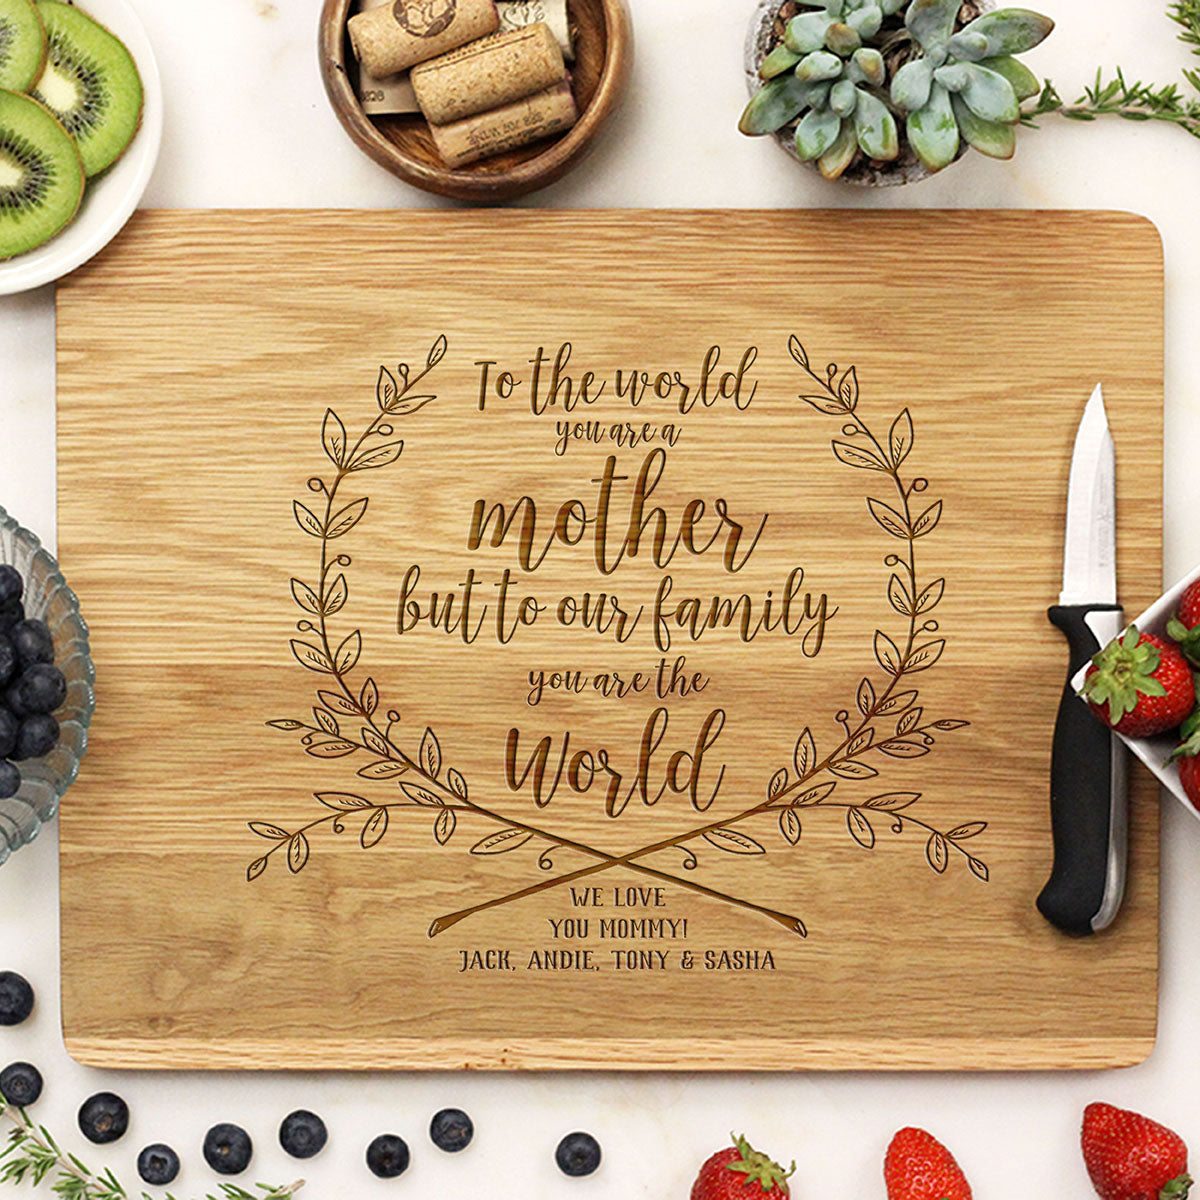 Personalized Wooden Cutting Board For Mother\'s Day – Stamp Out